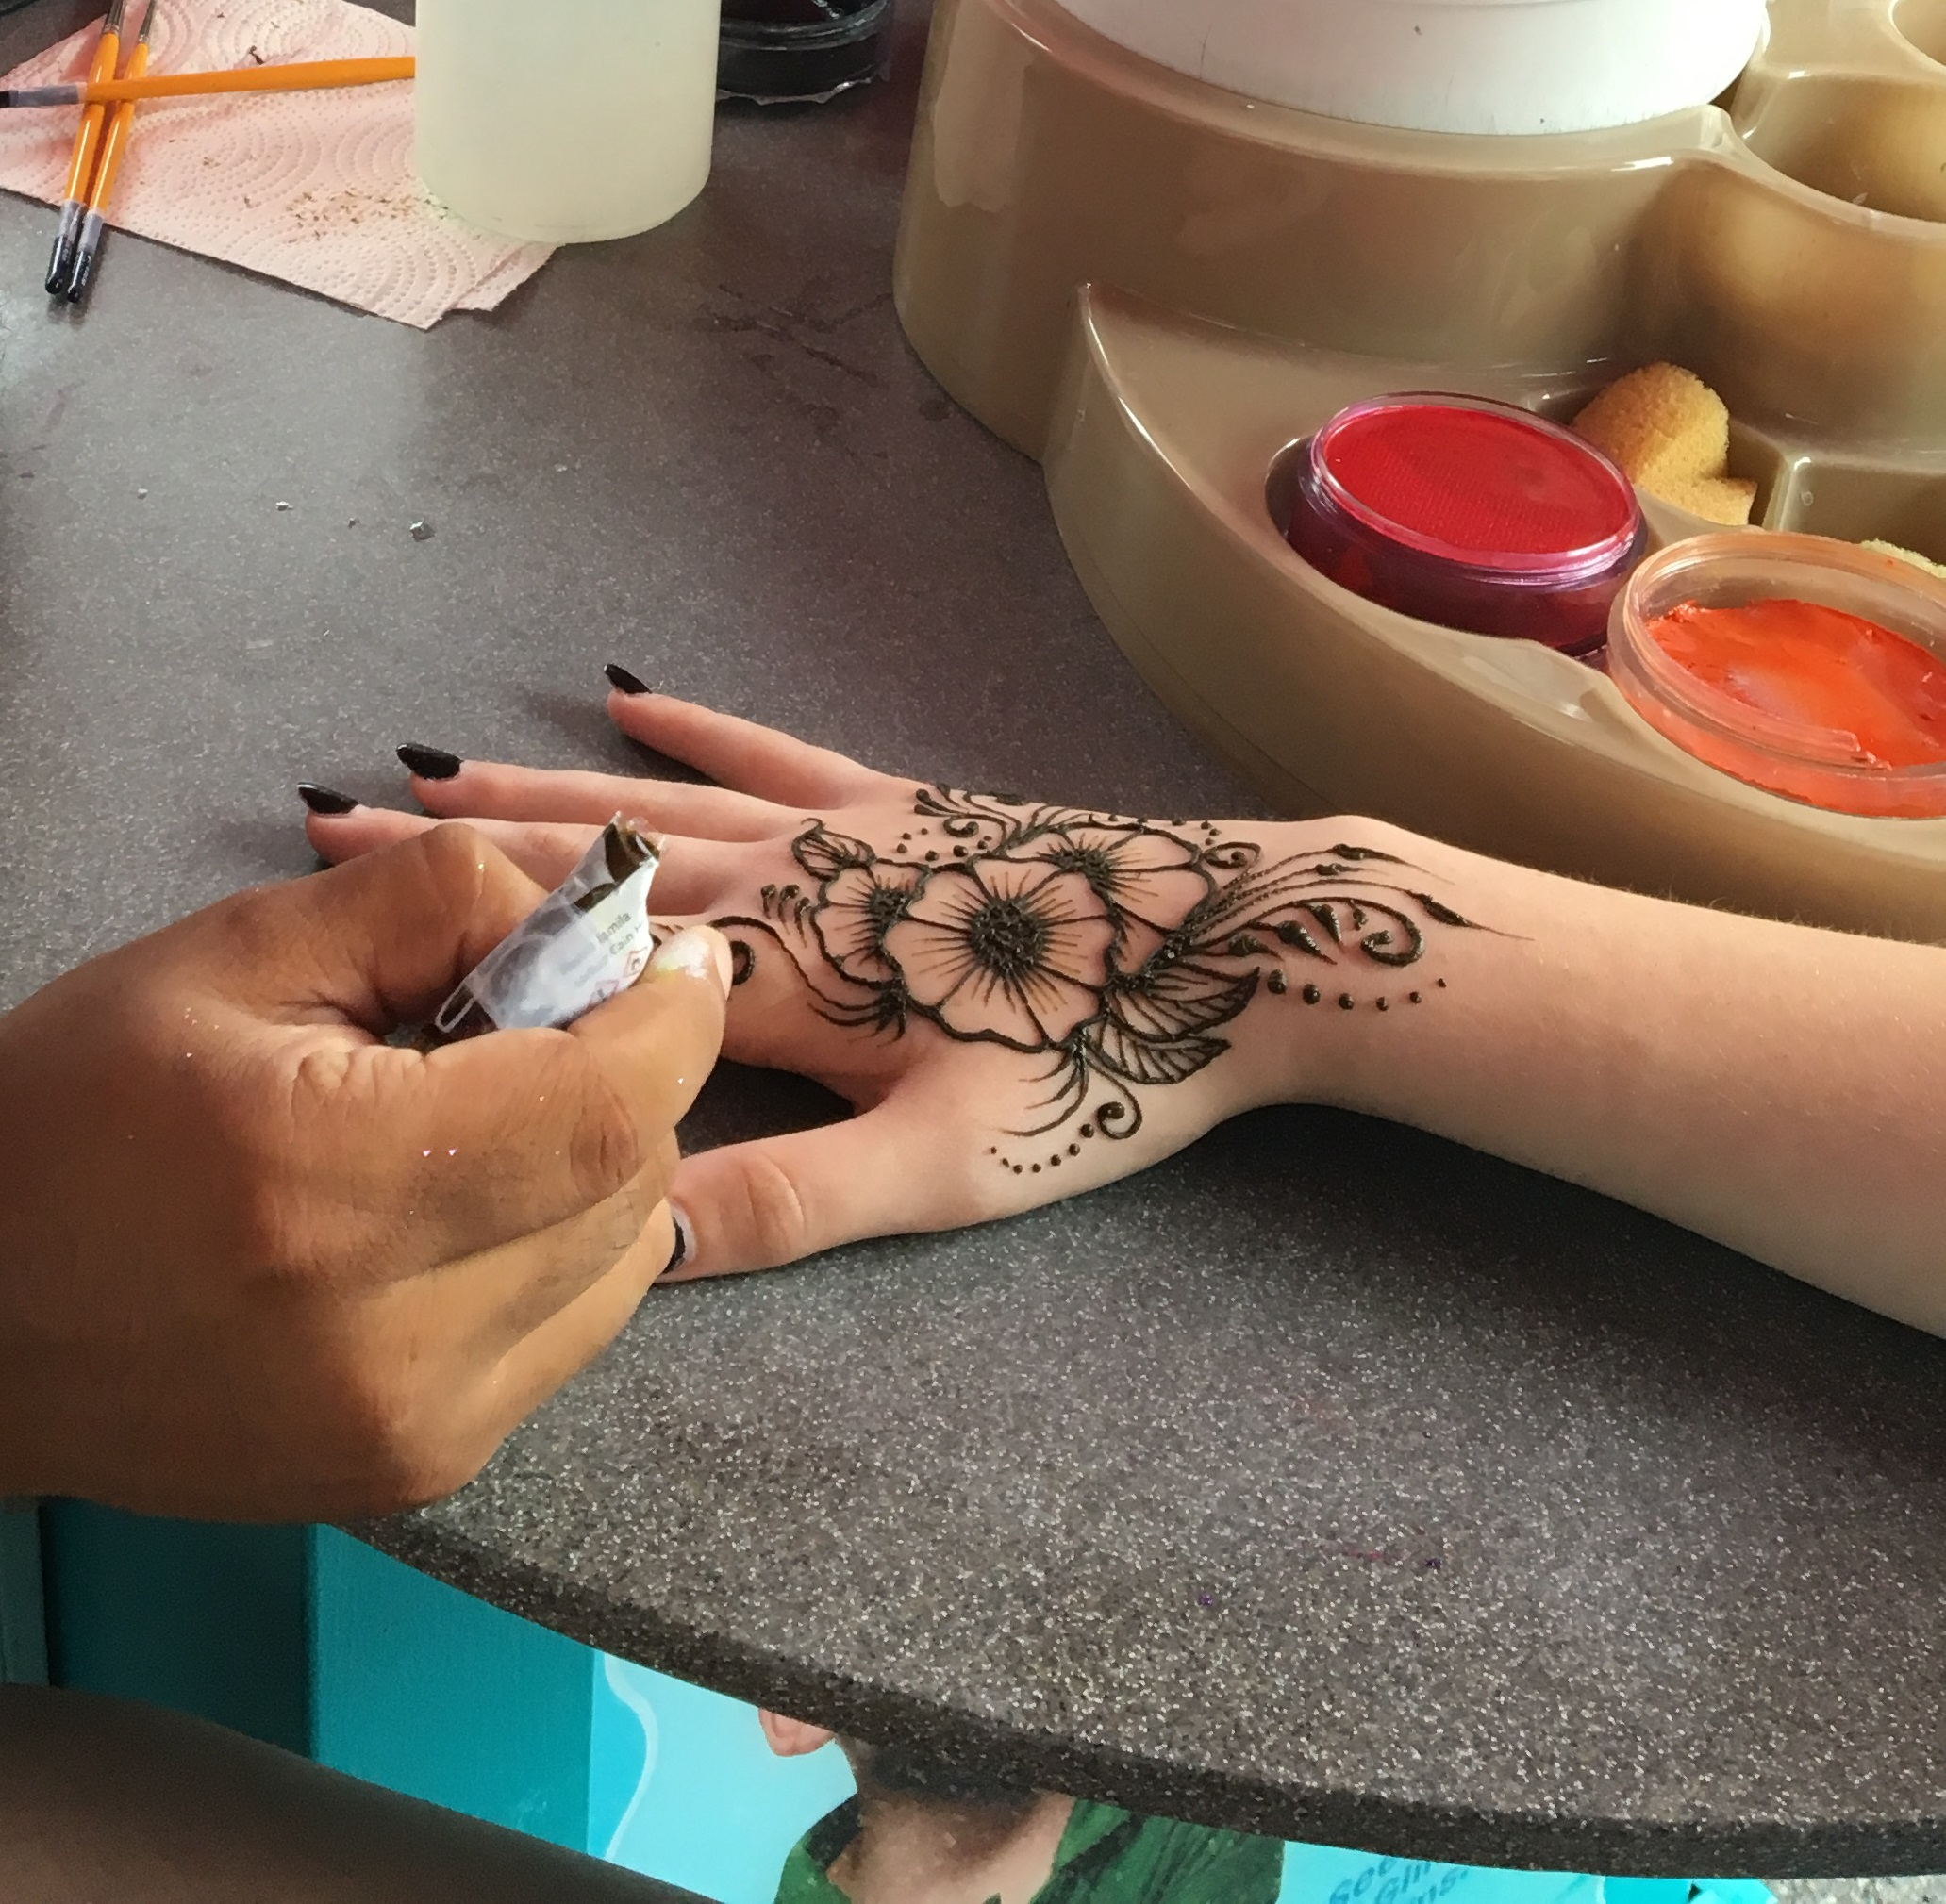 """80332ac67 Our Henna is mixed exclusively for Kaman's Art Shoppes, and is safe and all  natural. It contains no PPD """"black henna"""" or any man-made chemicals."""